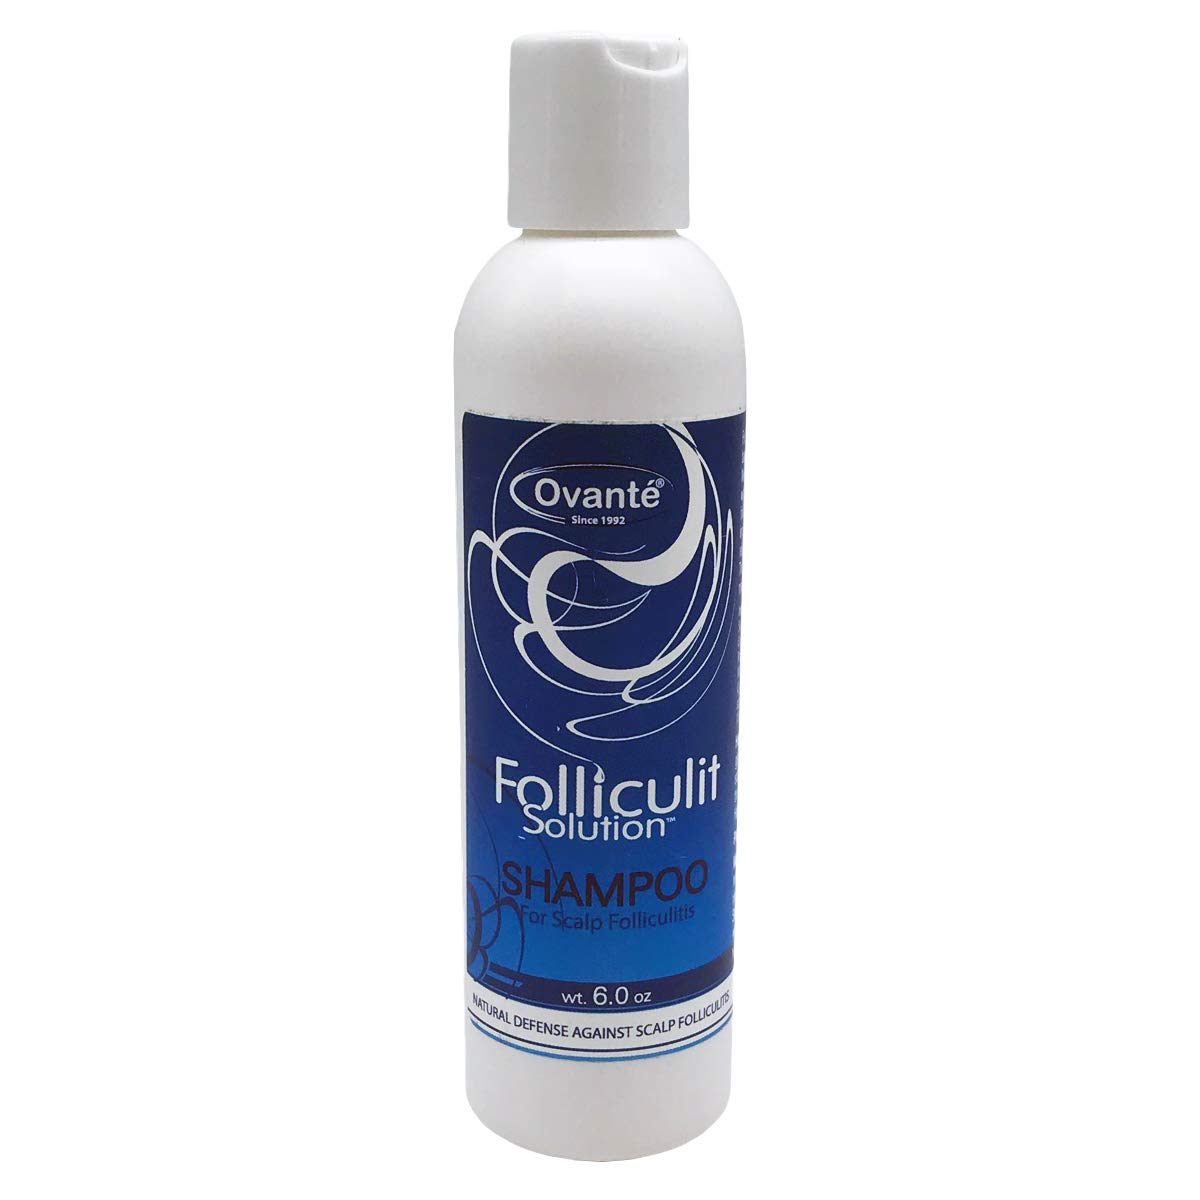 Folliculitis Anti-Bacterial, Anti-Fungal Shampoo, Treatment of Fungal Bacterial, Infection of Hair Follicles, Ringworm, Itching-Greasy Scalp, Dandruff, Scalp Folliculitis - 6.0 oz by OVANTE